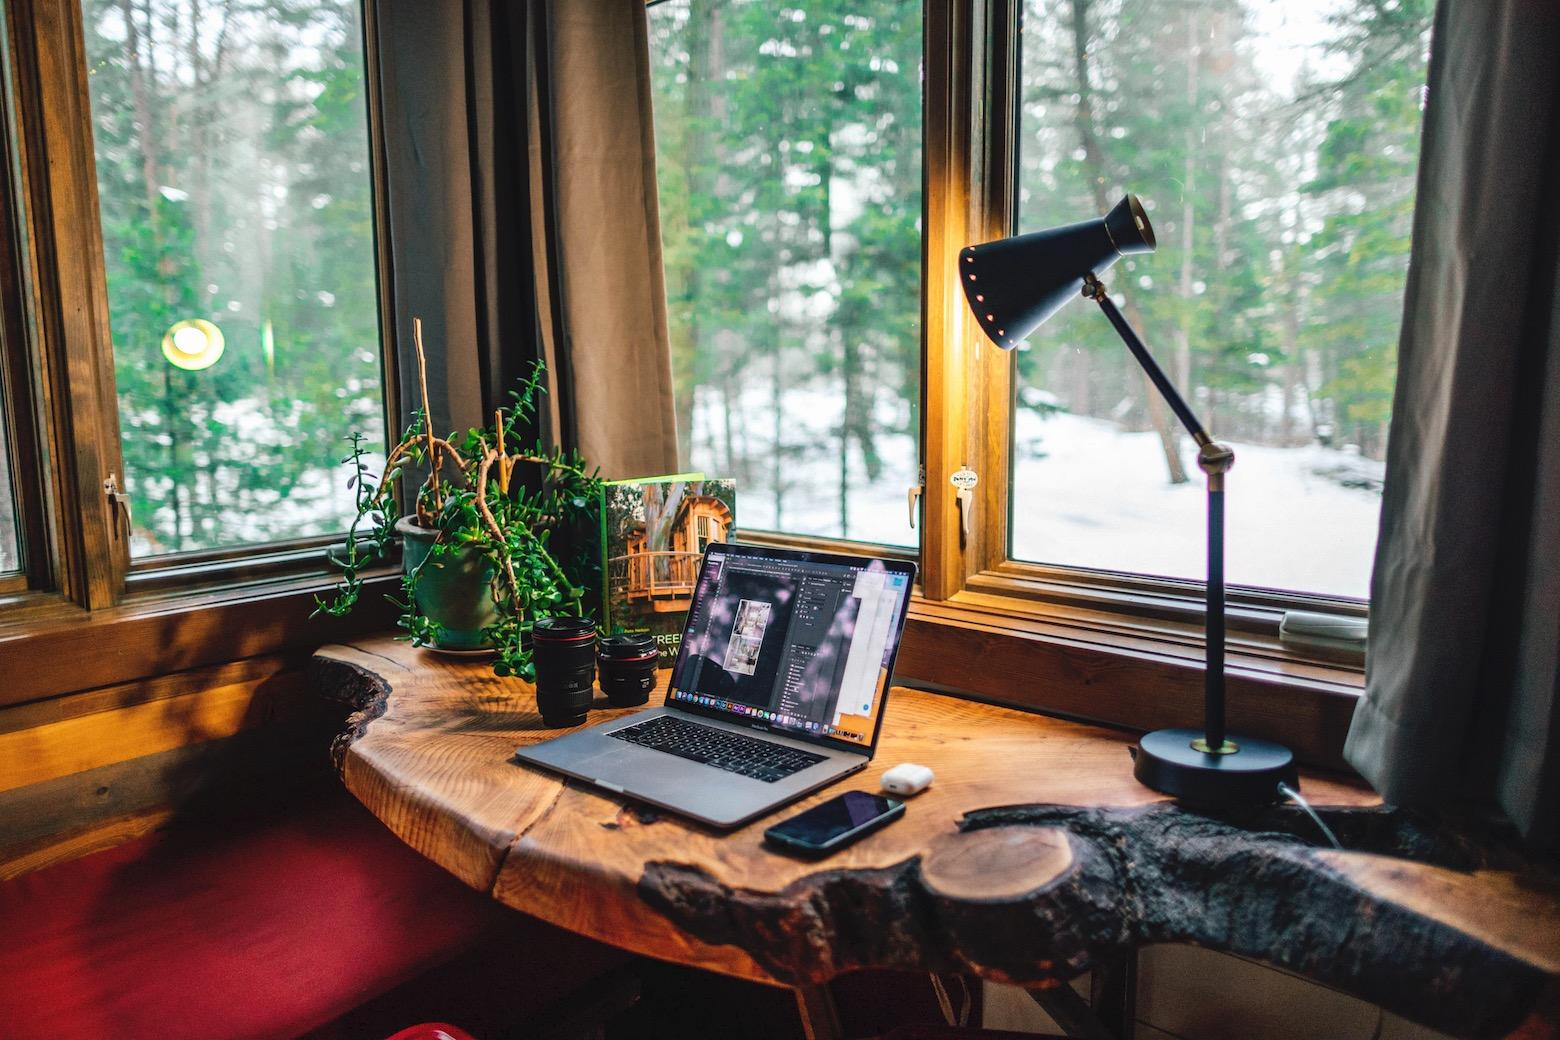 Working from home tips: home offices don't have to resemble a cubicle